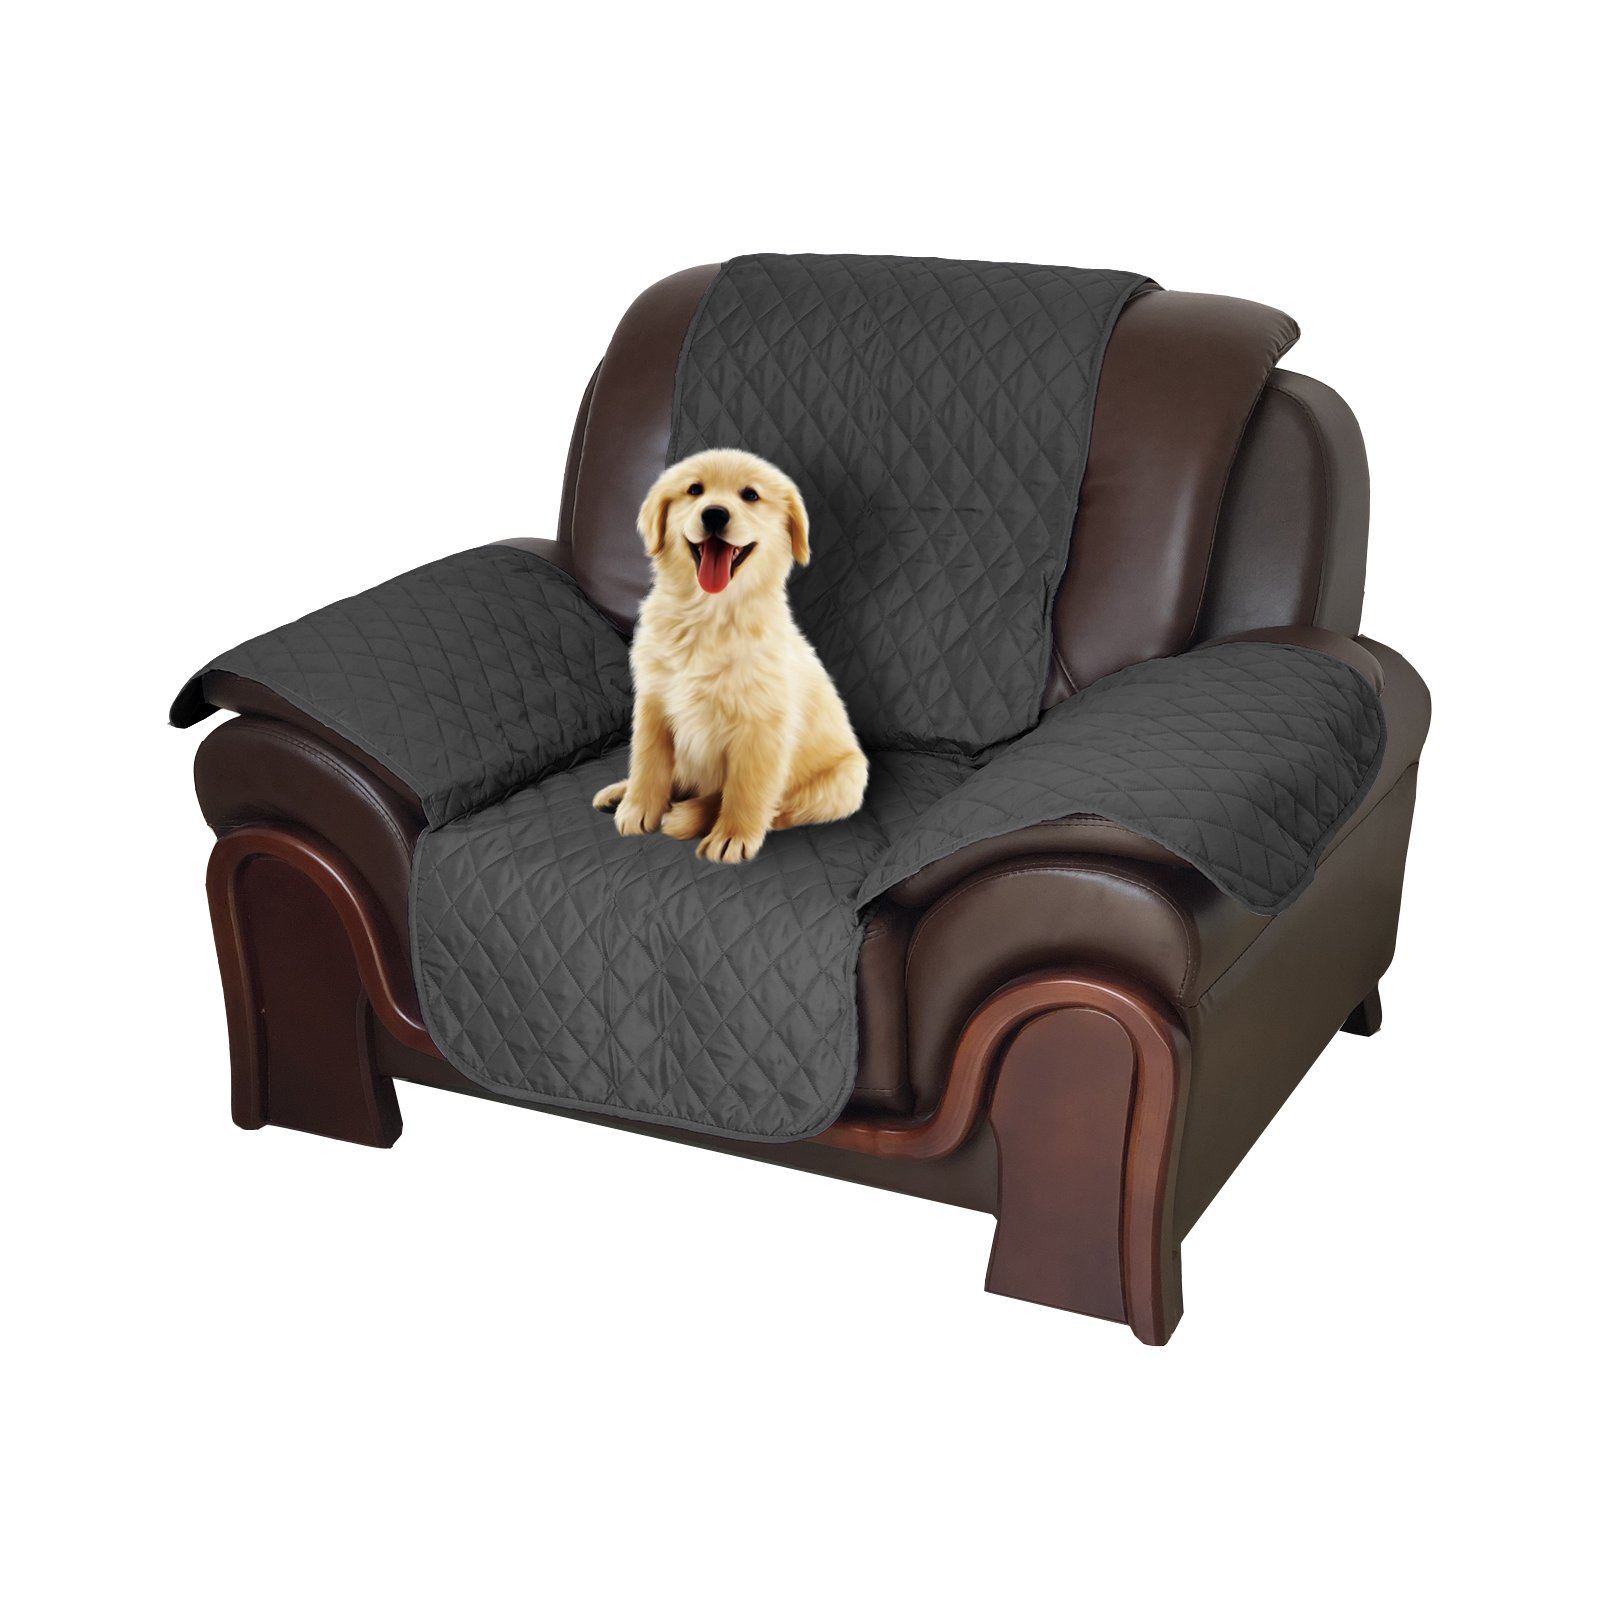 Pet Sofa Cover, Reversible Couch Cover for Dogs, Kids, Pets, Sofa Slipcover Set Furniture Protector for 1 Cushion Couch, Recliner, Loveseat and Chair Black 21'' X 72''